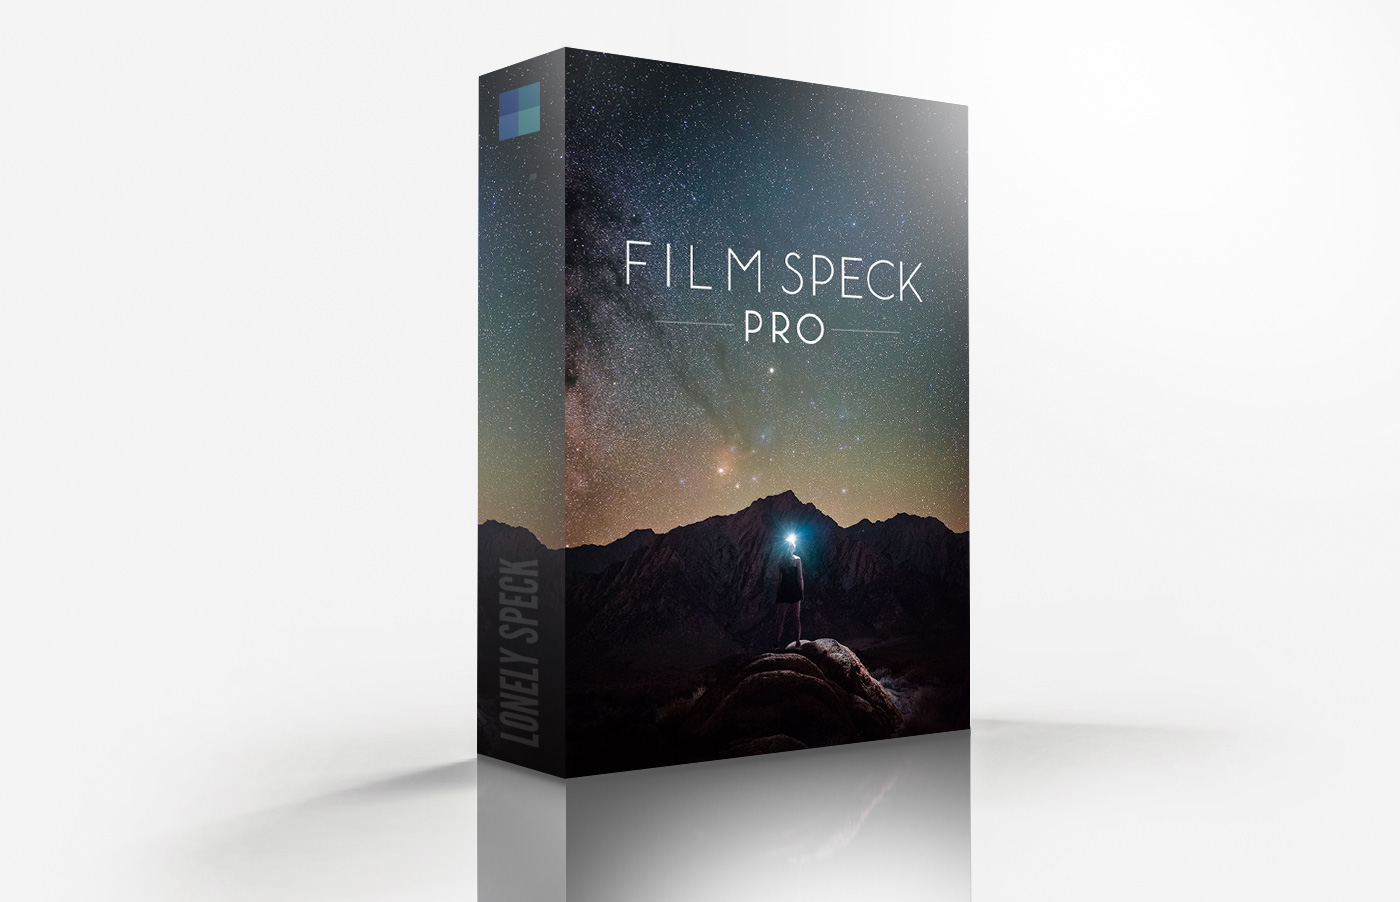 Film Speck Pro: Premium Lightroom Presets for Astrophotography